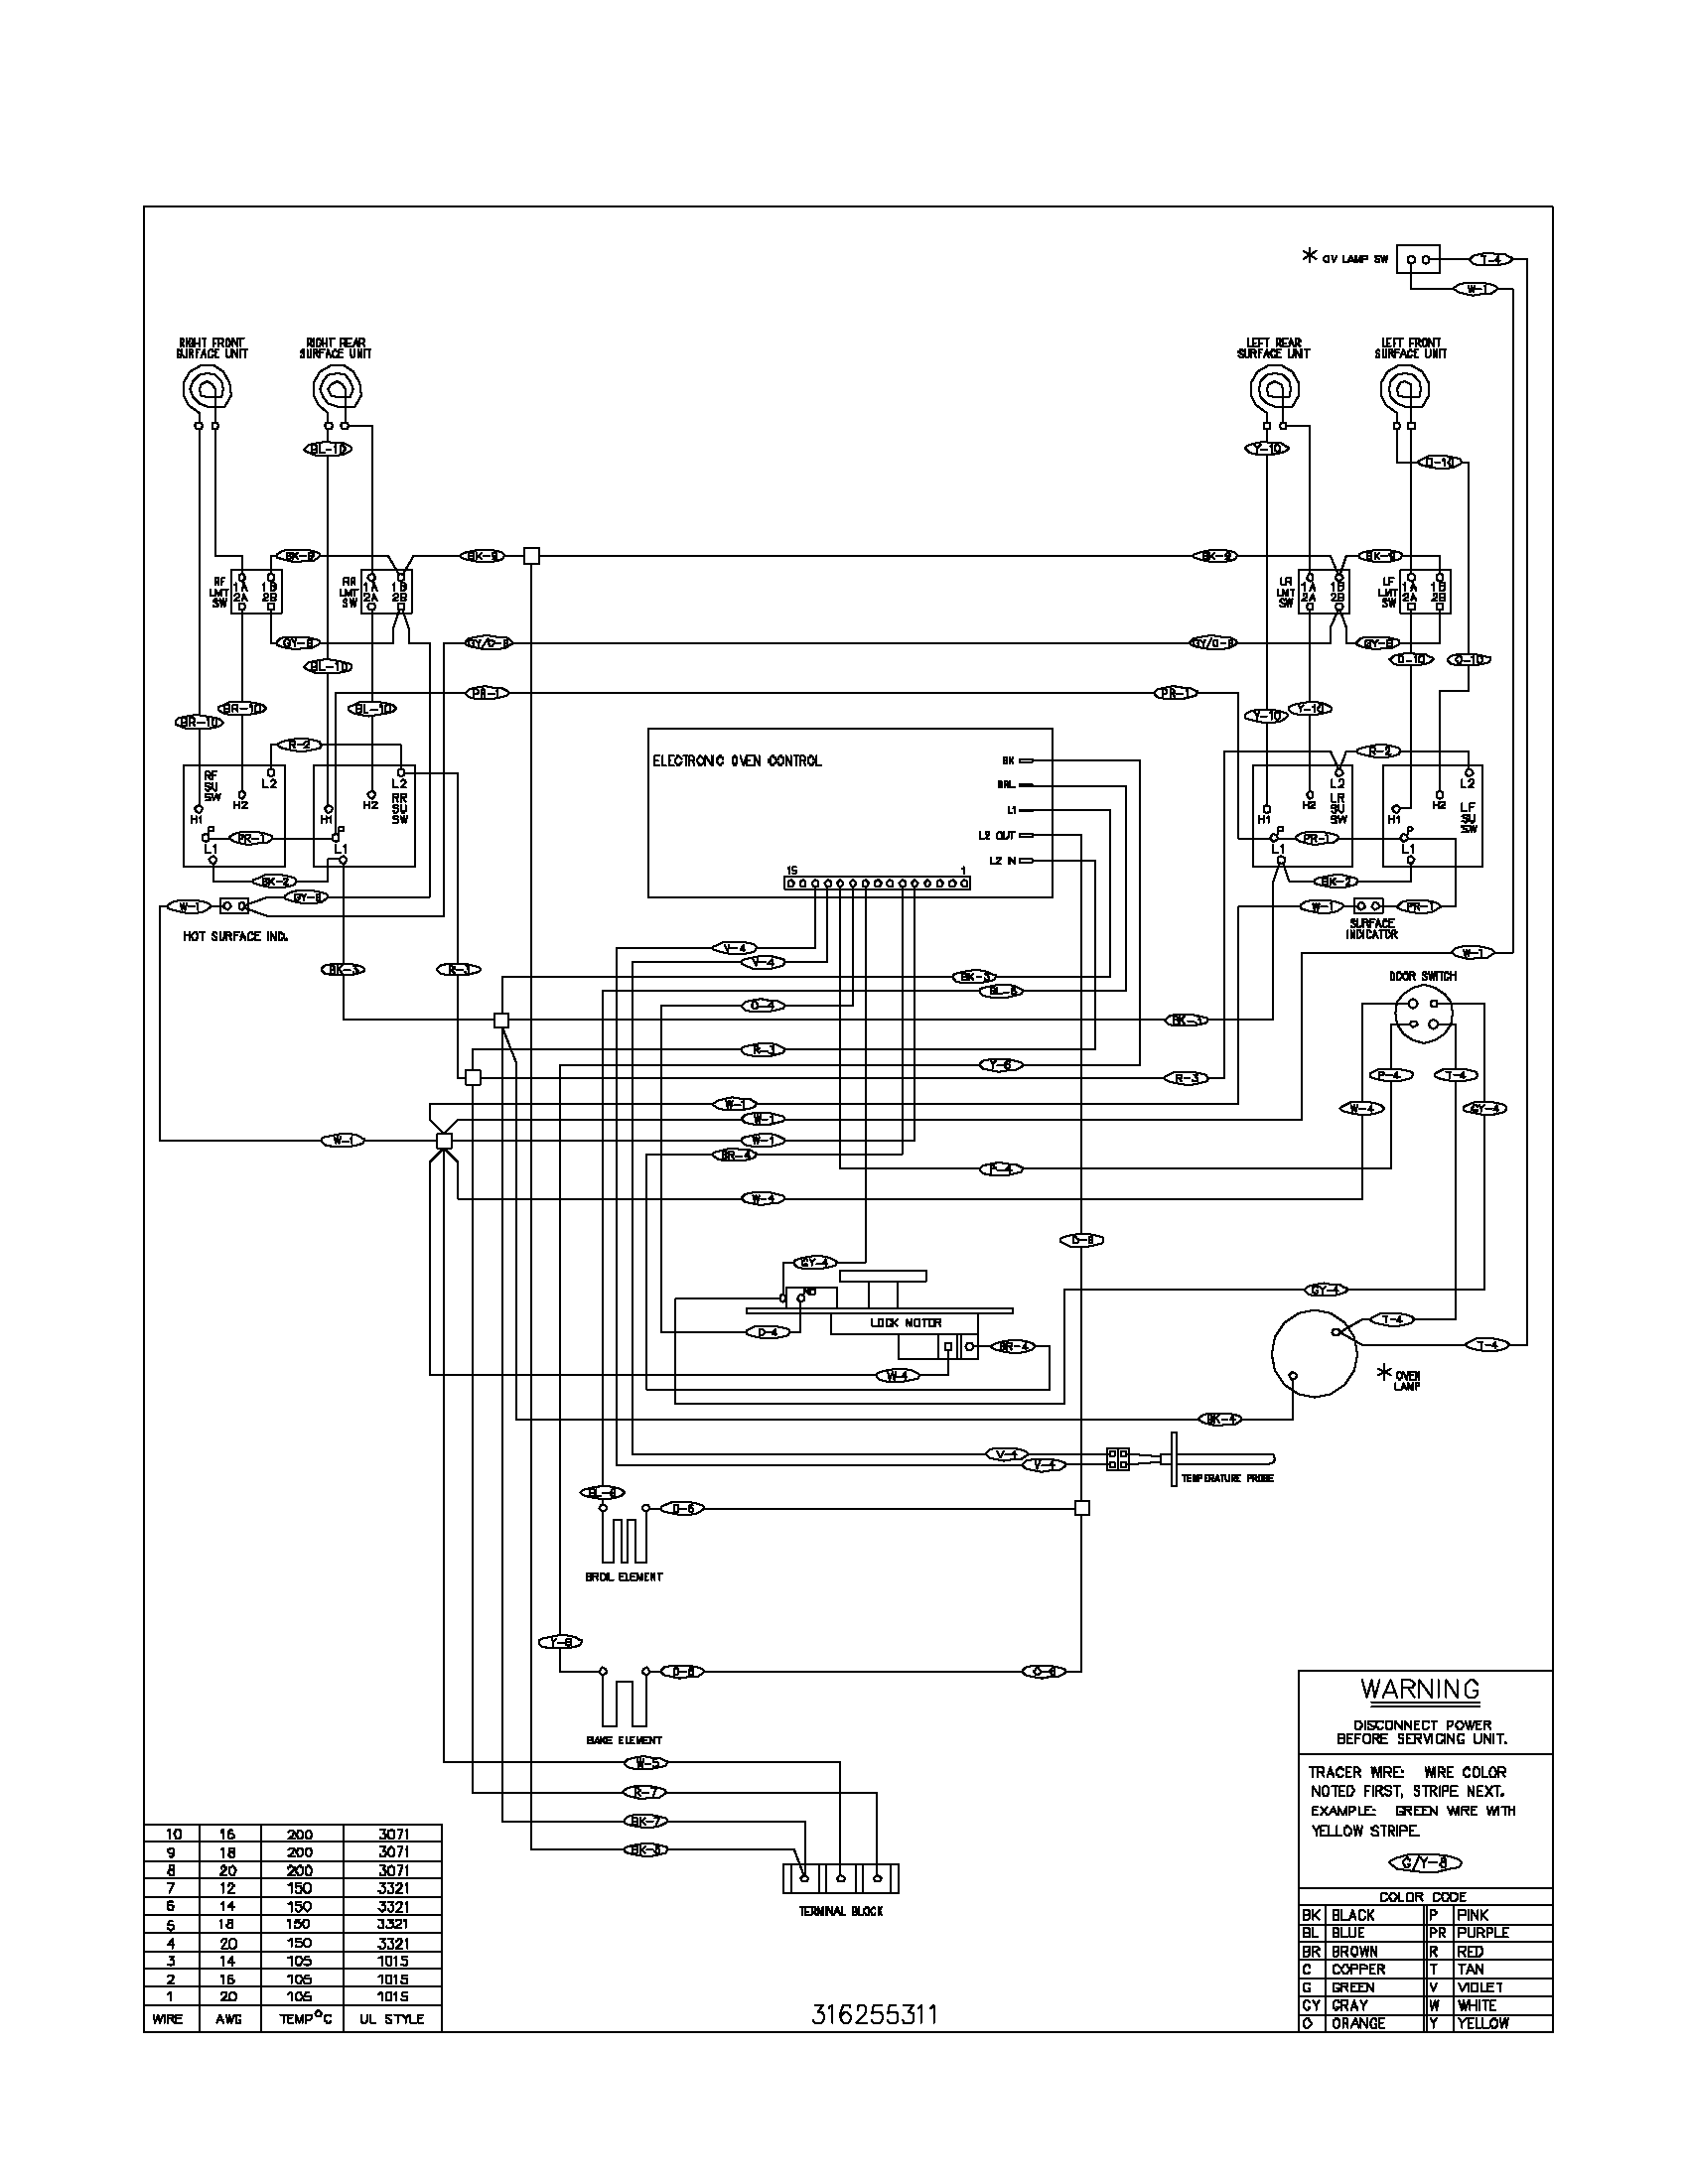 Bosch Classixx Dishwasher Wiring Diagram additionally Maytag Dryer Wiring Diagram besides Ref fan moreover 4967049504 likewise 2000 Toyota 4runner Engine Diagram. on whirlpool refrigerator wiring diagram